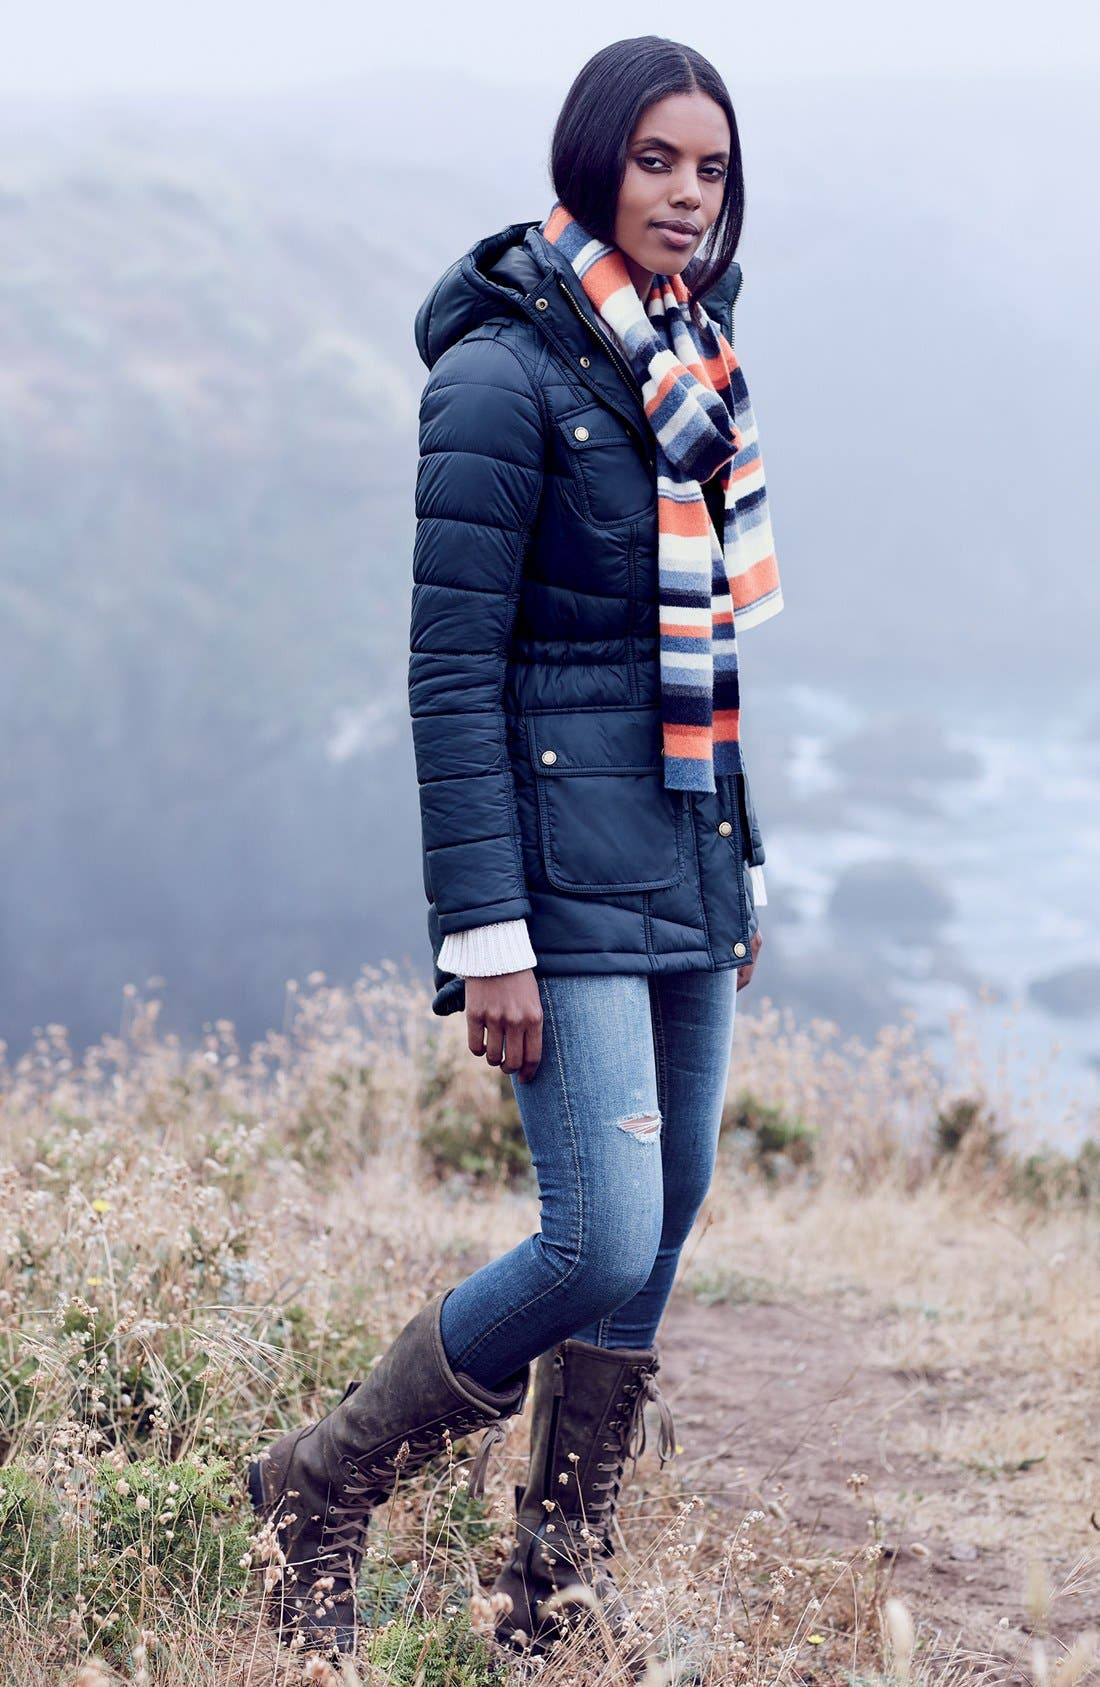 Barbour Coat & Scarf, AG Skinny Jeans Outfit with Accessories